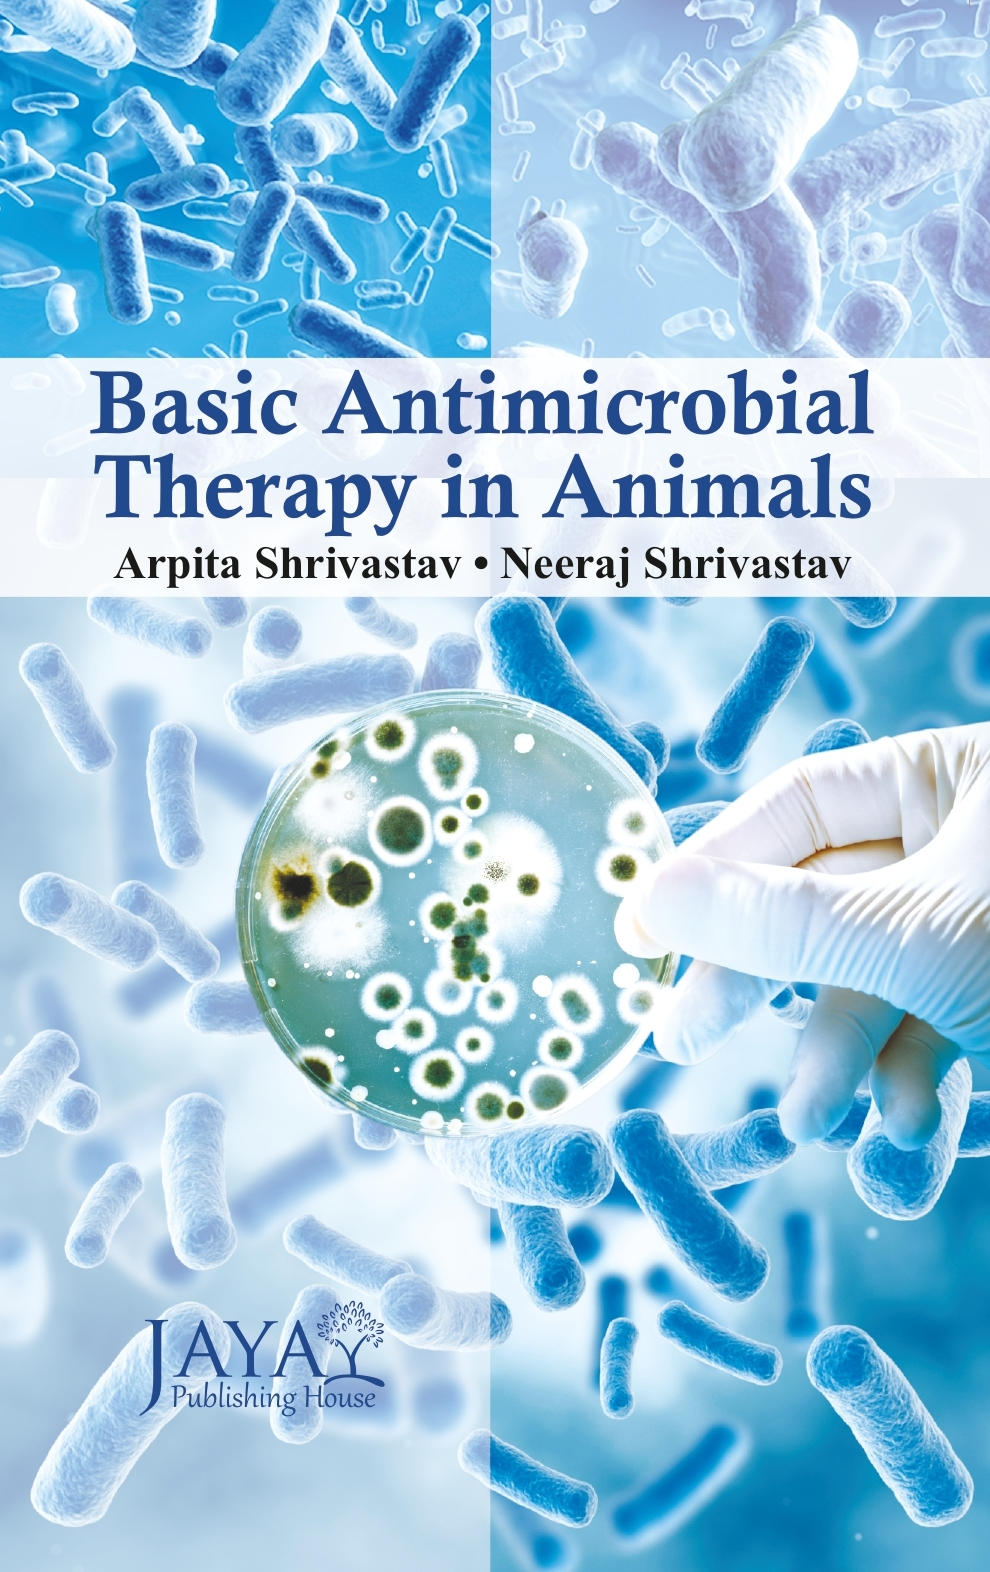 Basic Antimicrobial Therapy in Animals